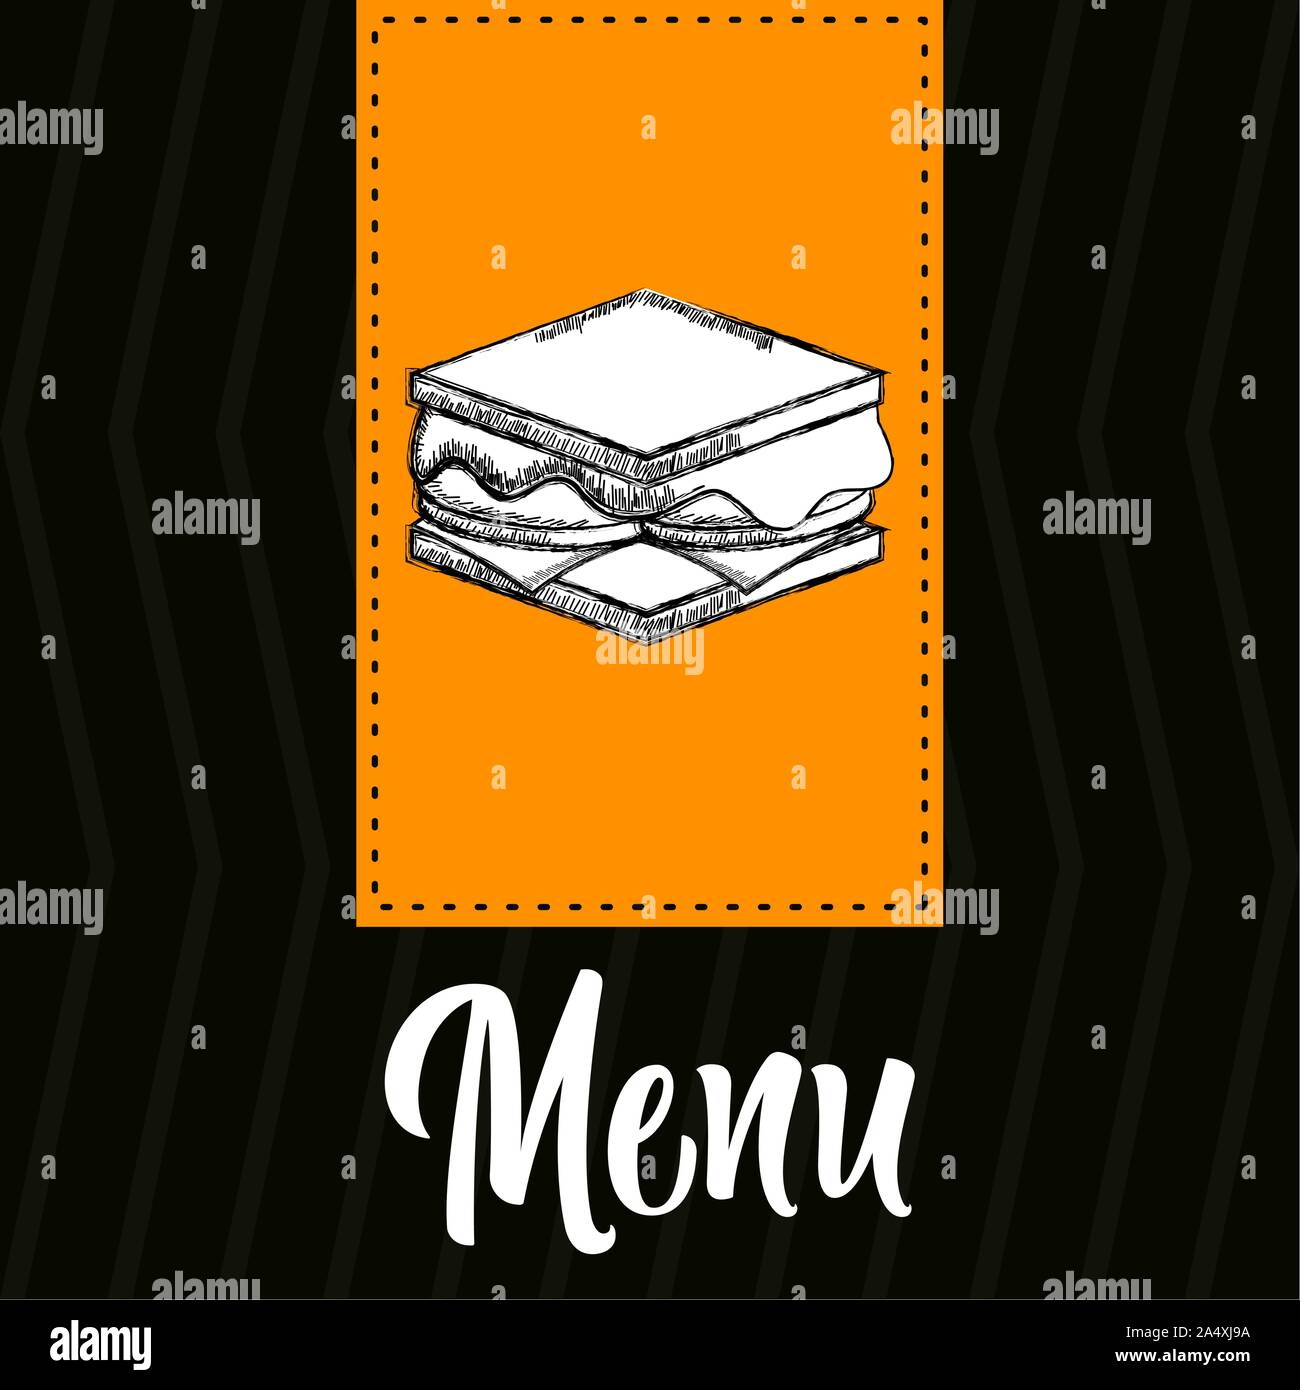 Food Drinks And Desserts Menu Restaurant Menu Design Vector Illustration Stock Vector Image Art Alamy